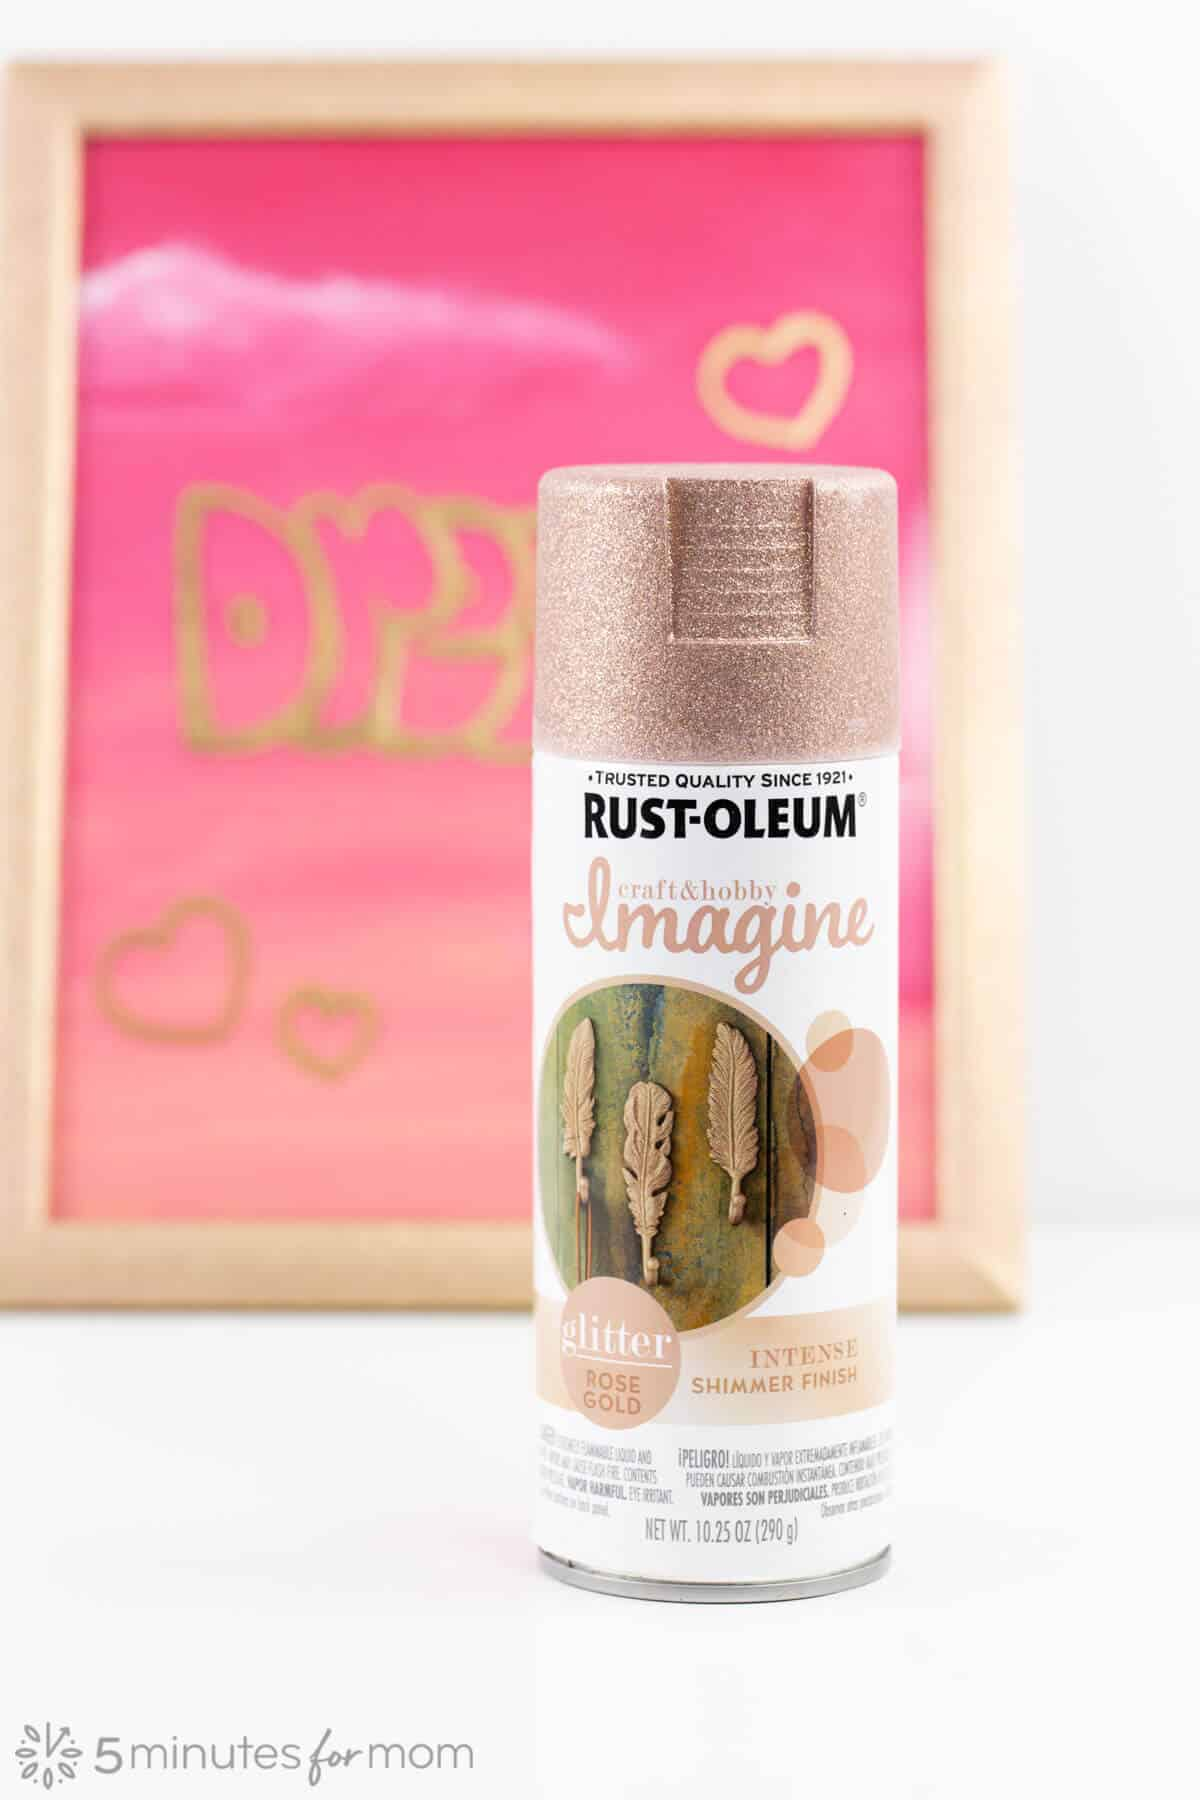 Rustoleum Glitter Rose Gold Spray Paint